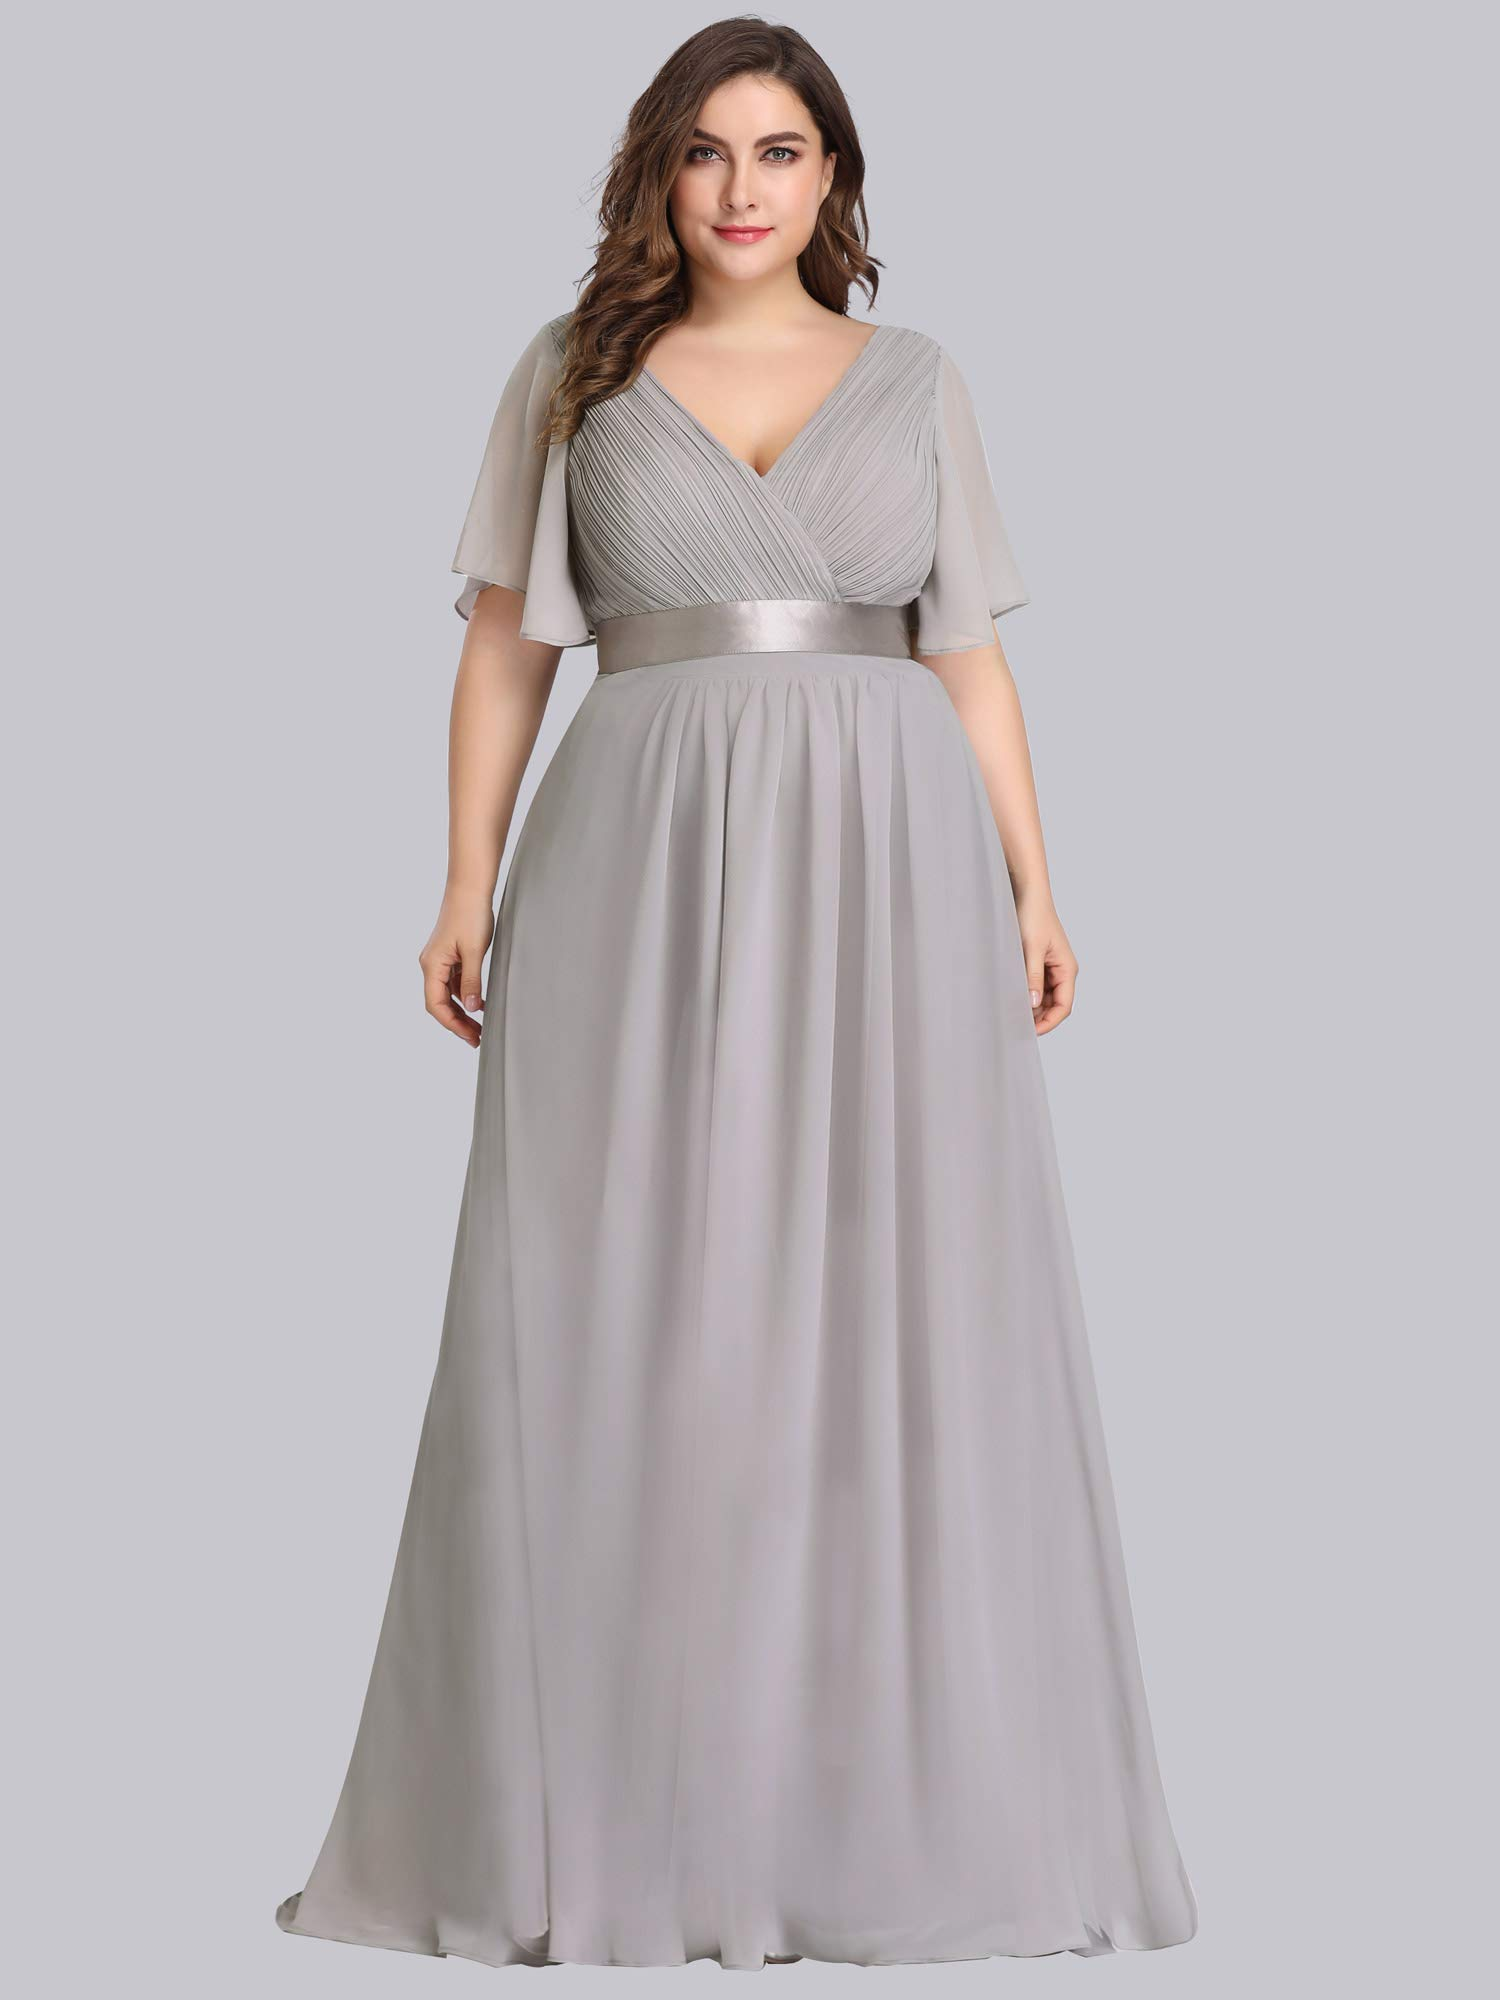 Alisapan Womens A Line Bridesmaid Dress Plus Size Formal Evening Dresses Grey Us20